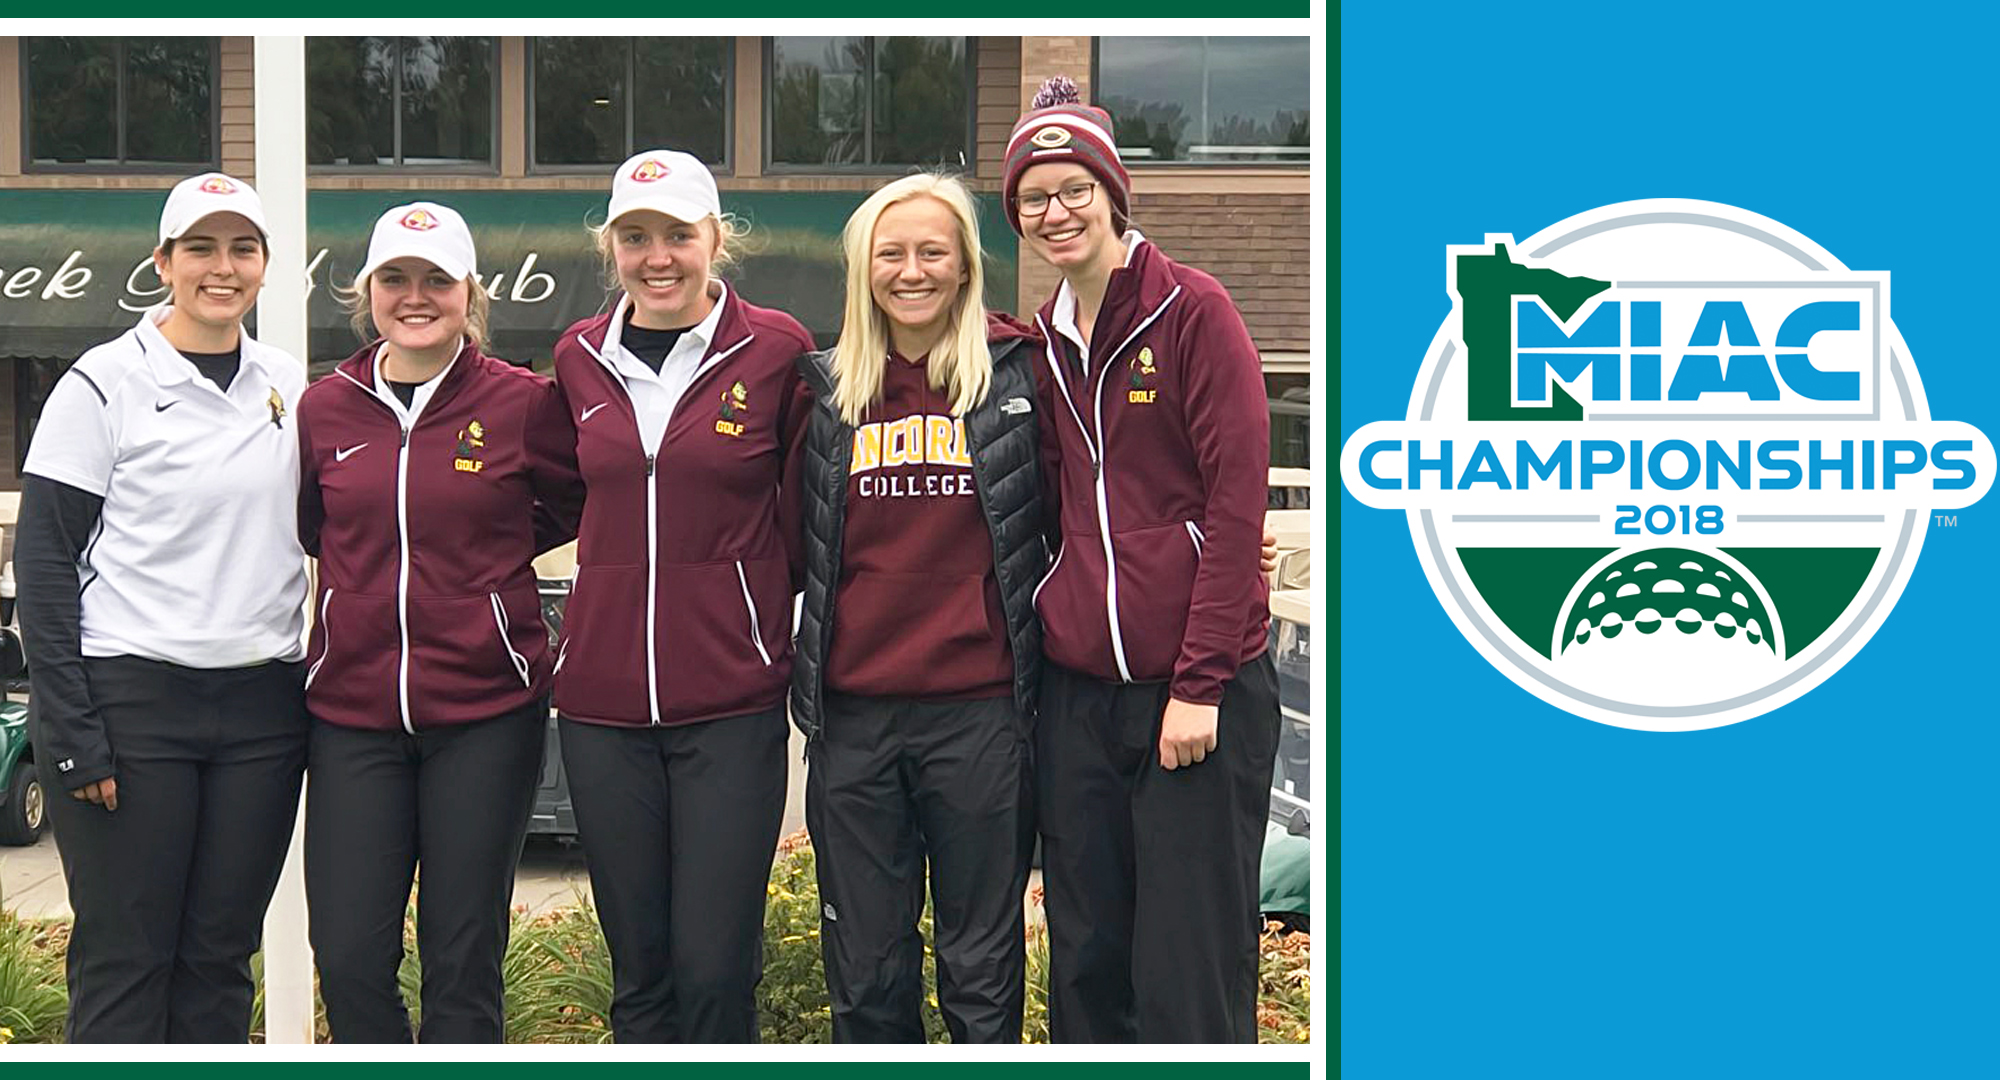 The Cobber women's golf team finished ninth at the MIAC Meet. The CC team (L-R): Bailey Klause, Katie Krueger, Katie Froemke, Jenna Pauly, Alyssa Dalen